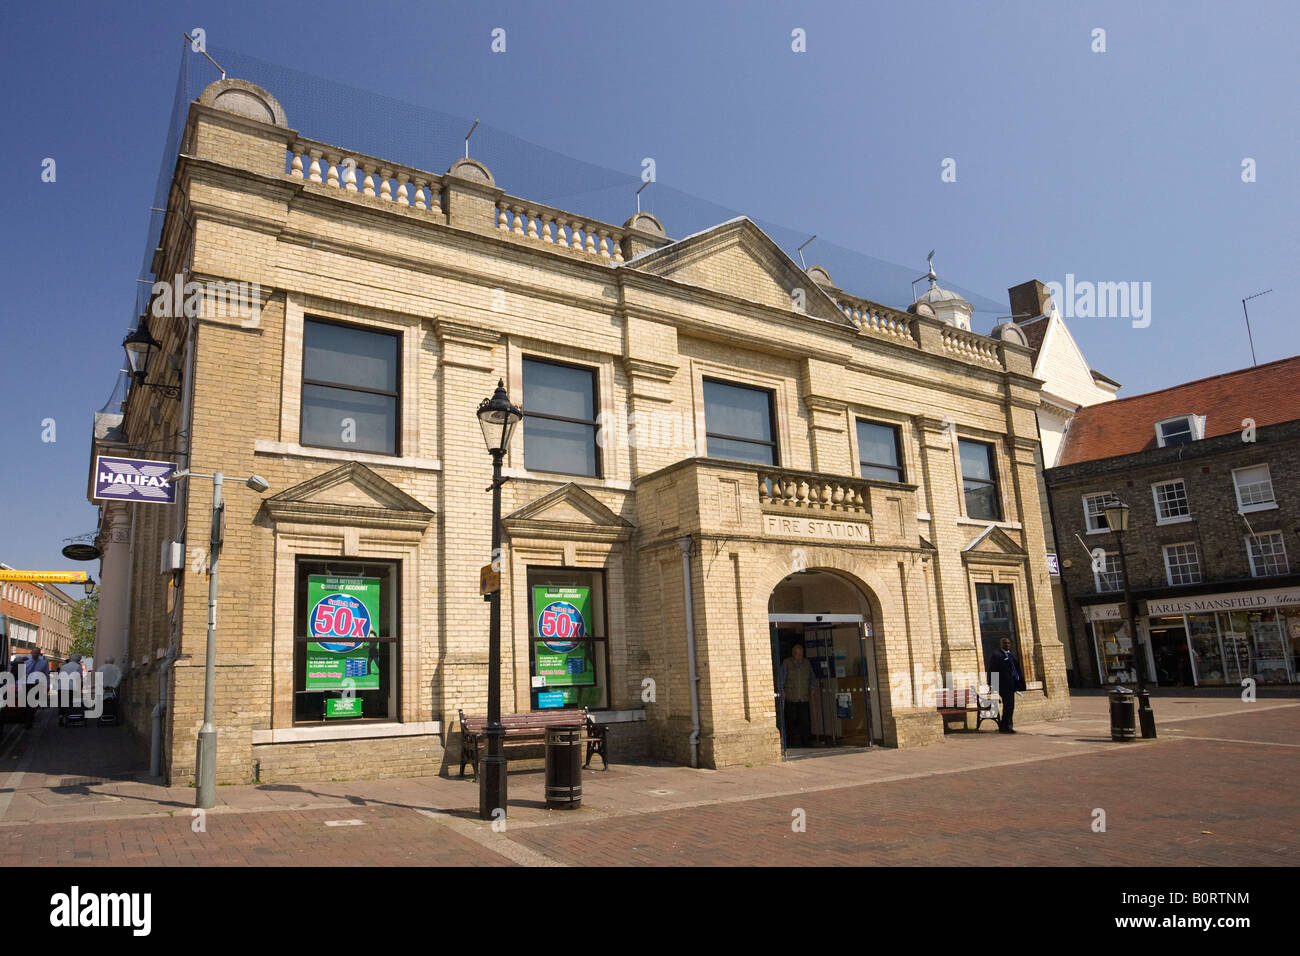 the Cornhill area in Bury St Edmunds, Suffolk, UK - Stock Image